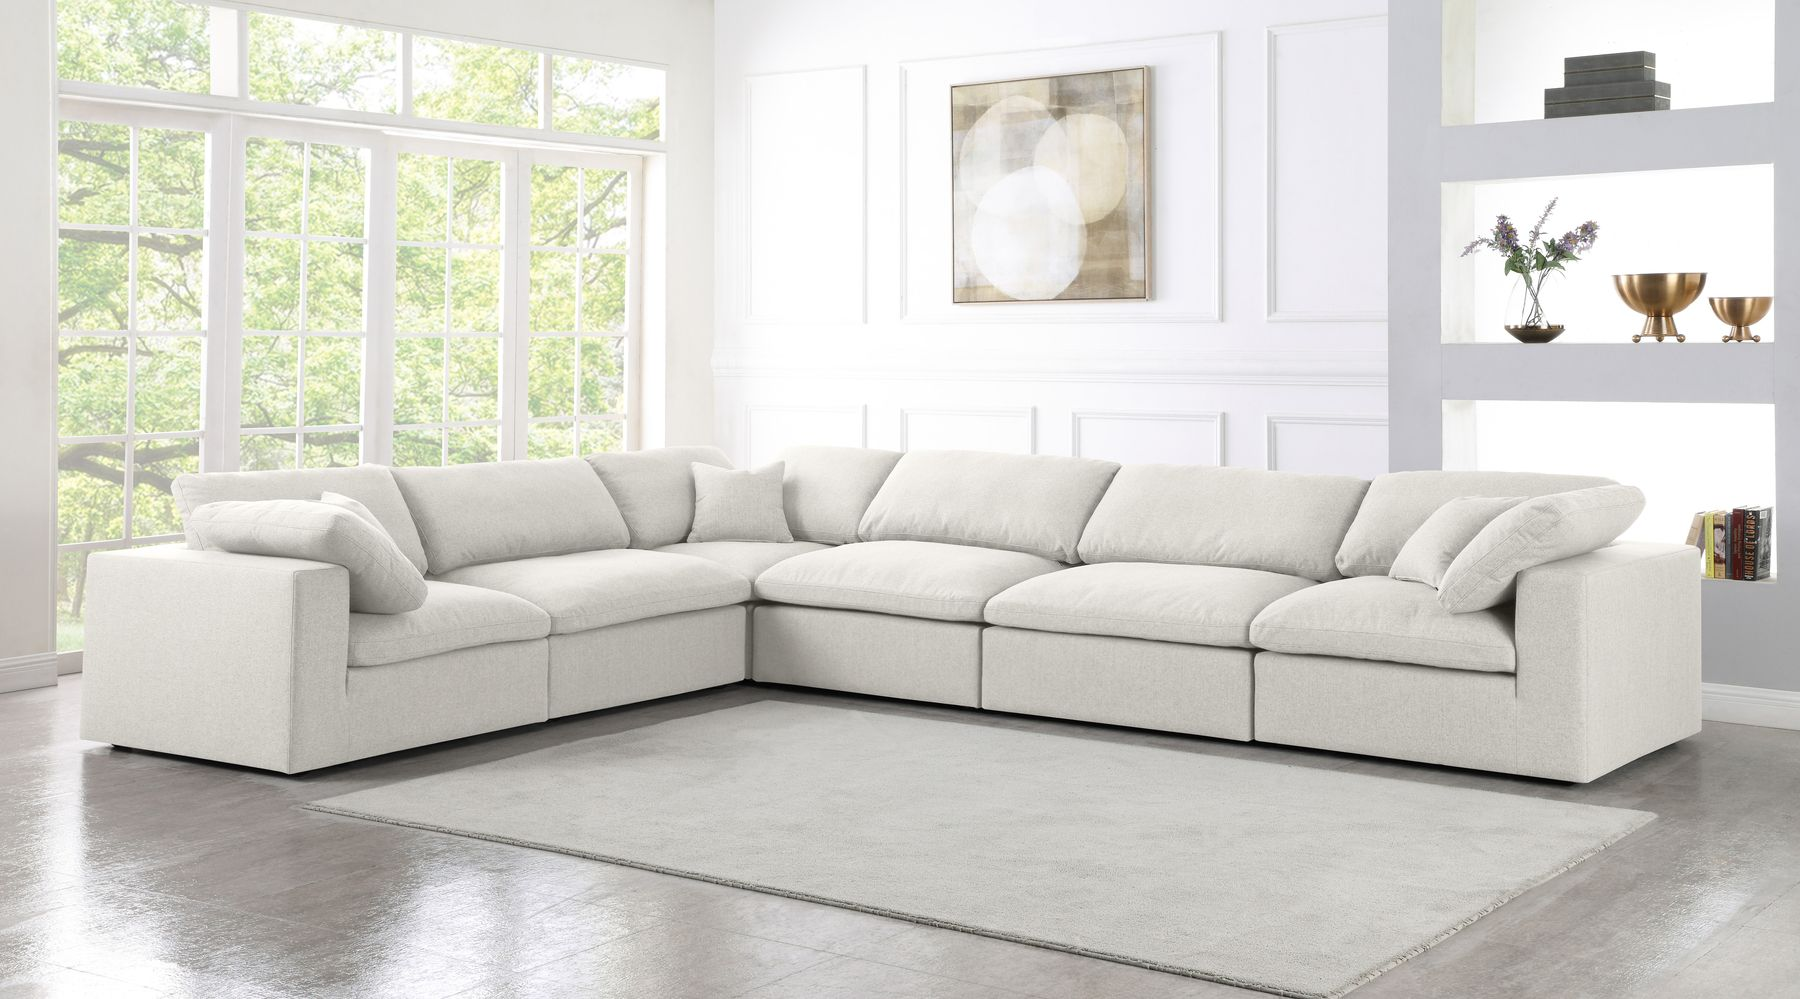 Serene 6a Cream Sectional Sofa In 2020 Sectional Sofa Grey